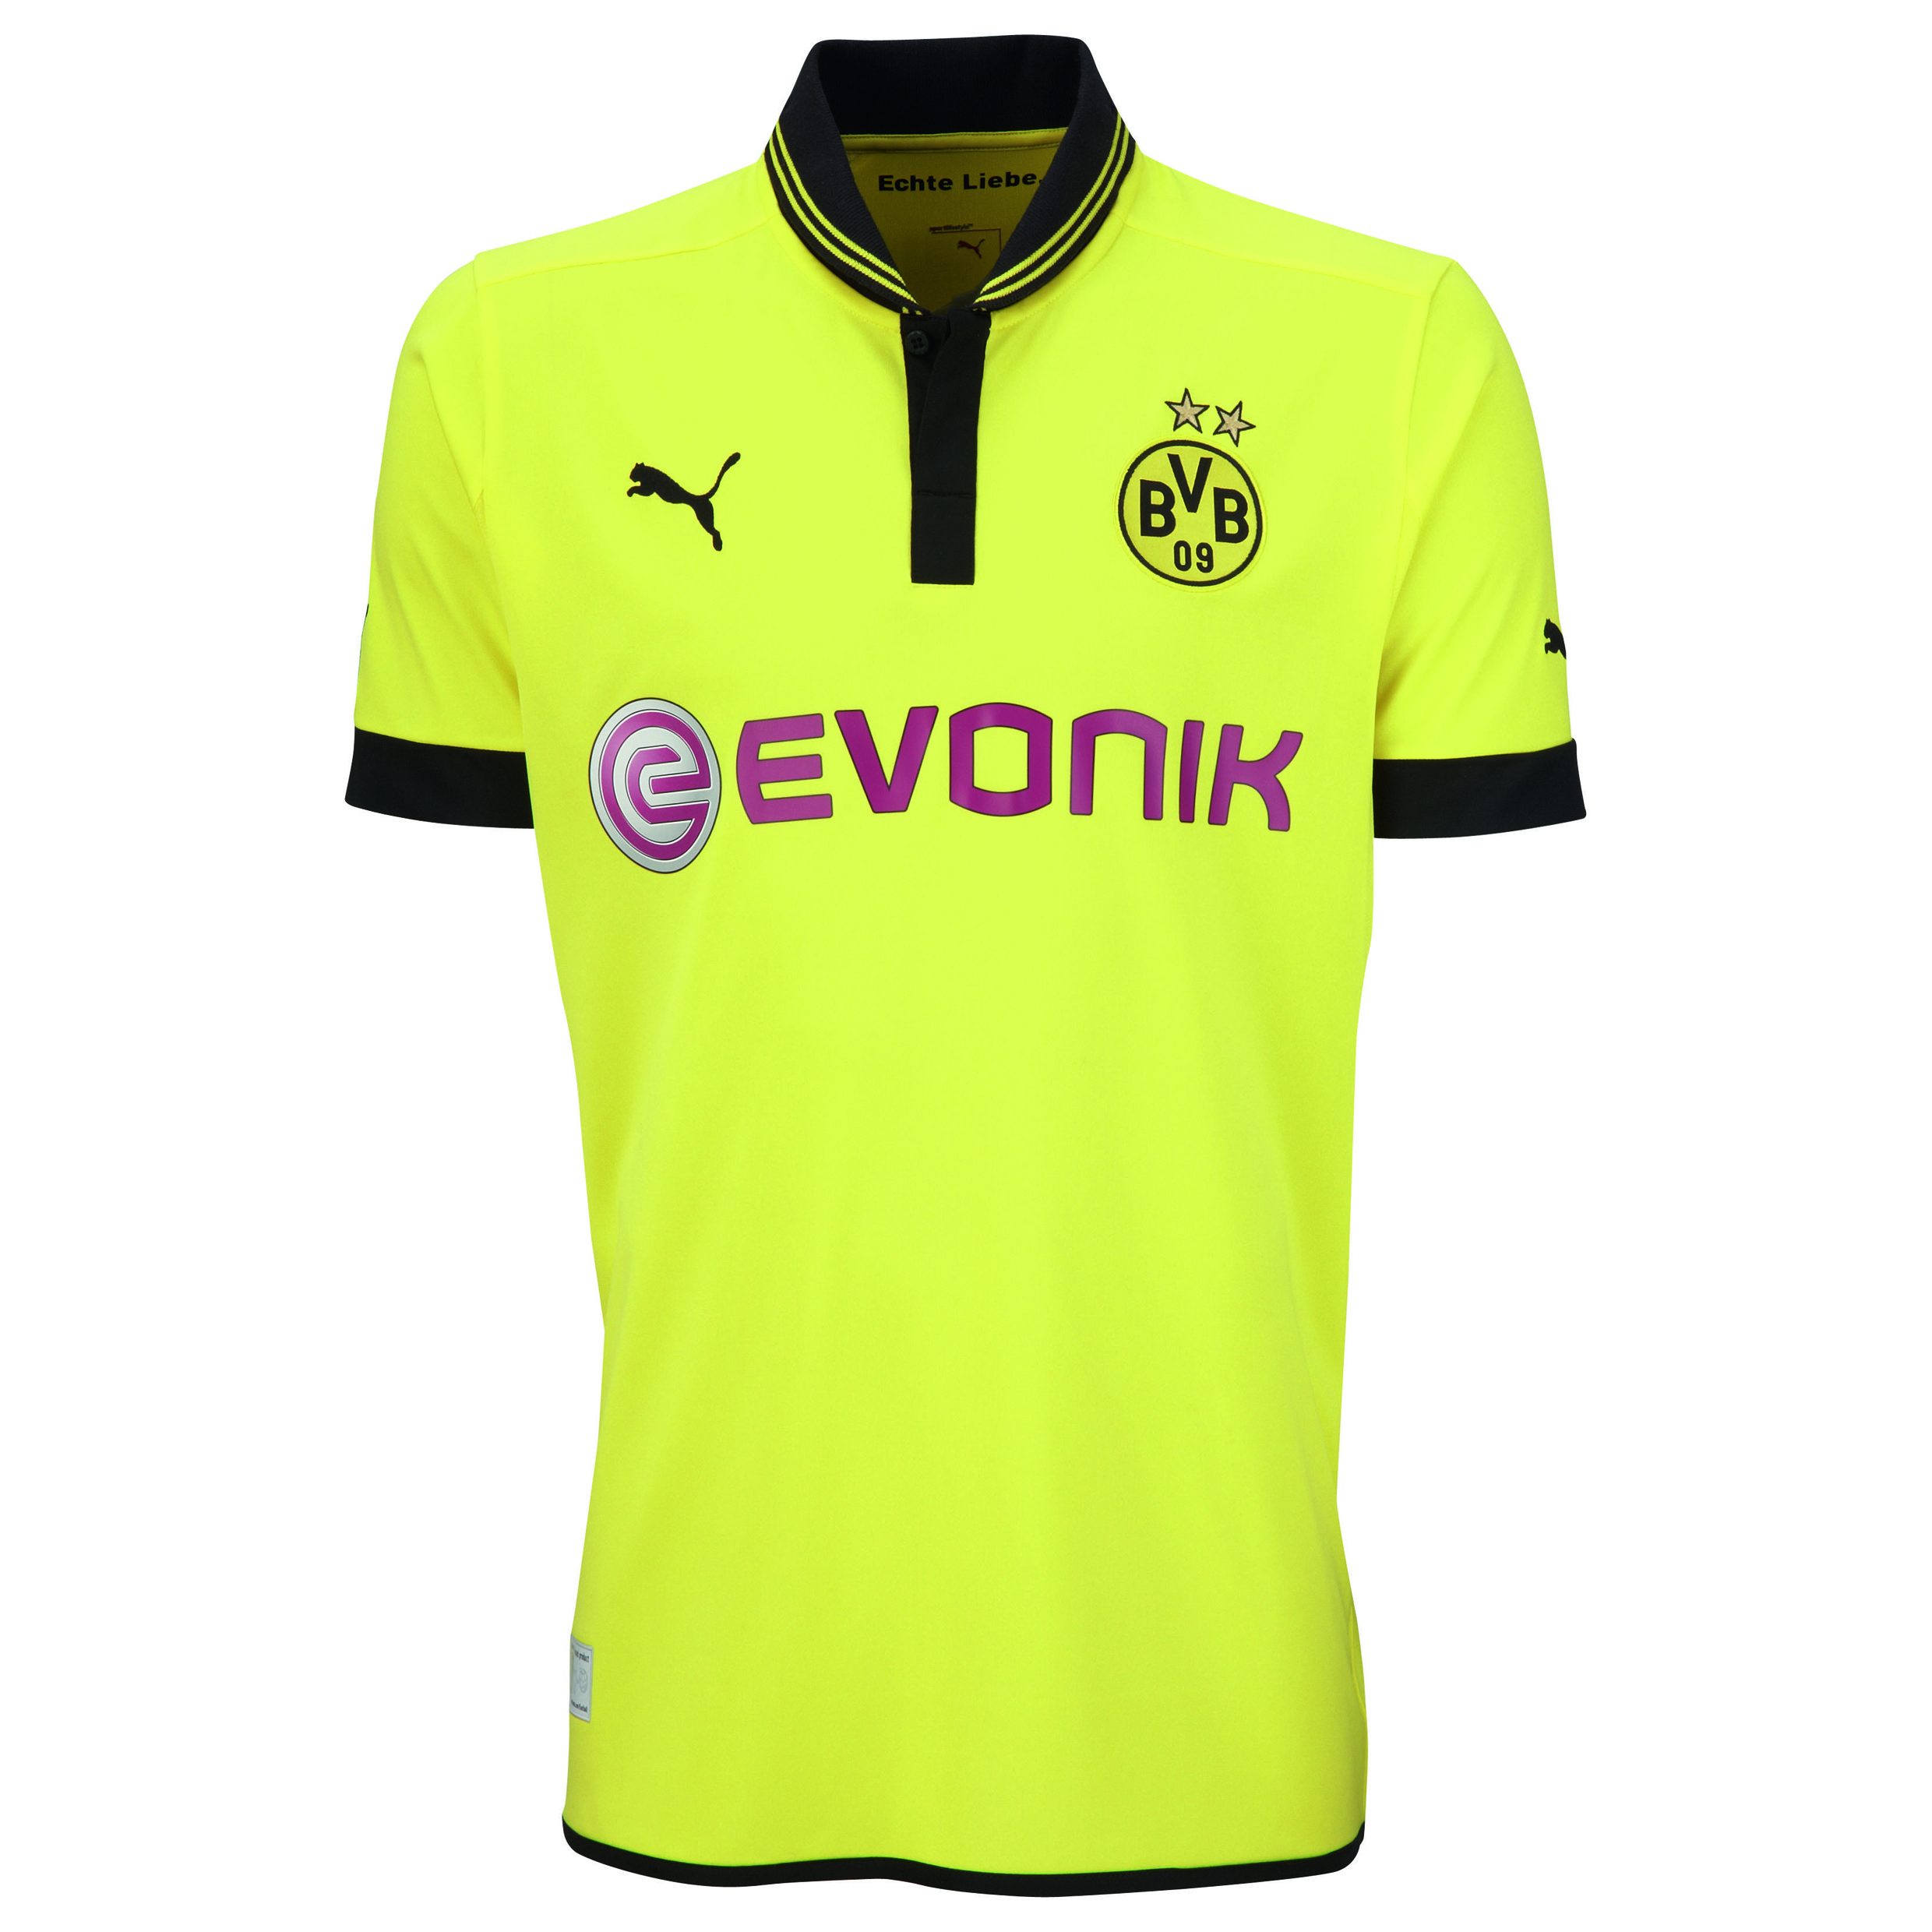 Borussia Dortmund 2012/13 Home Short Sleeve Shirt